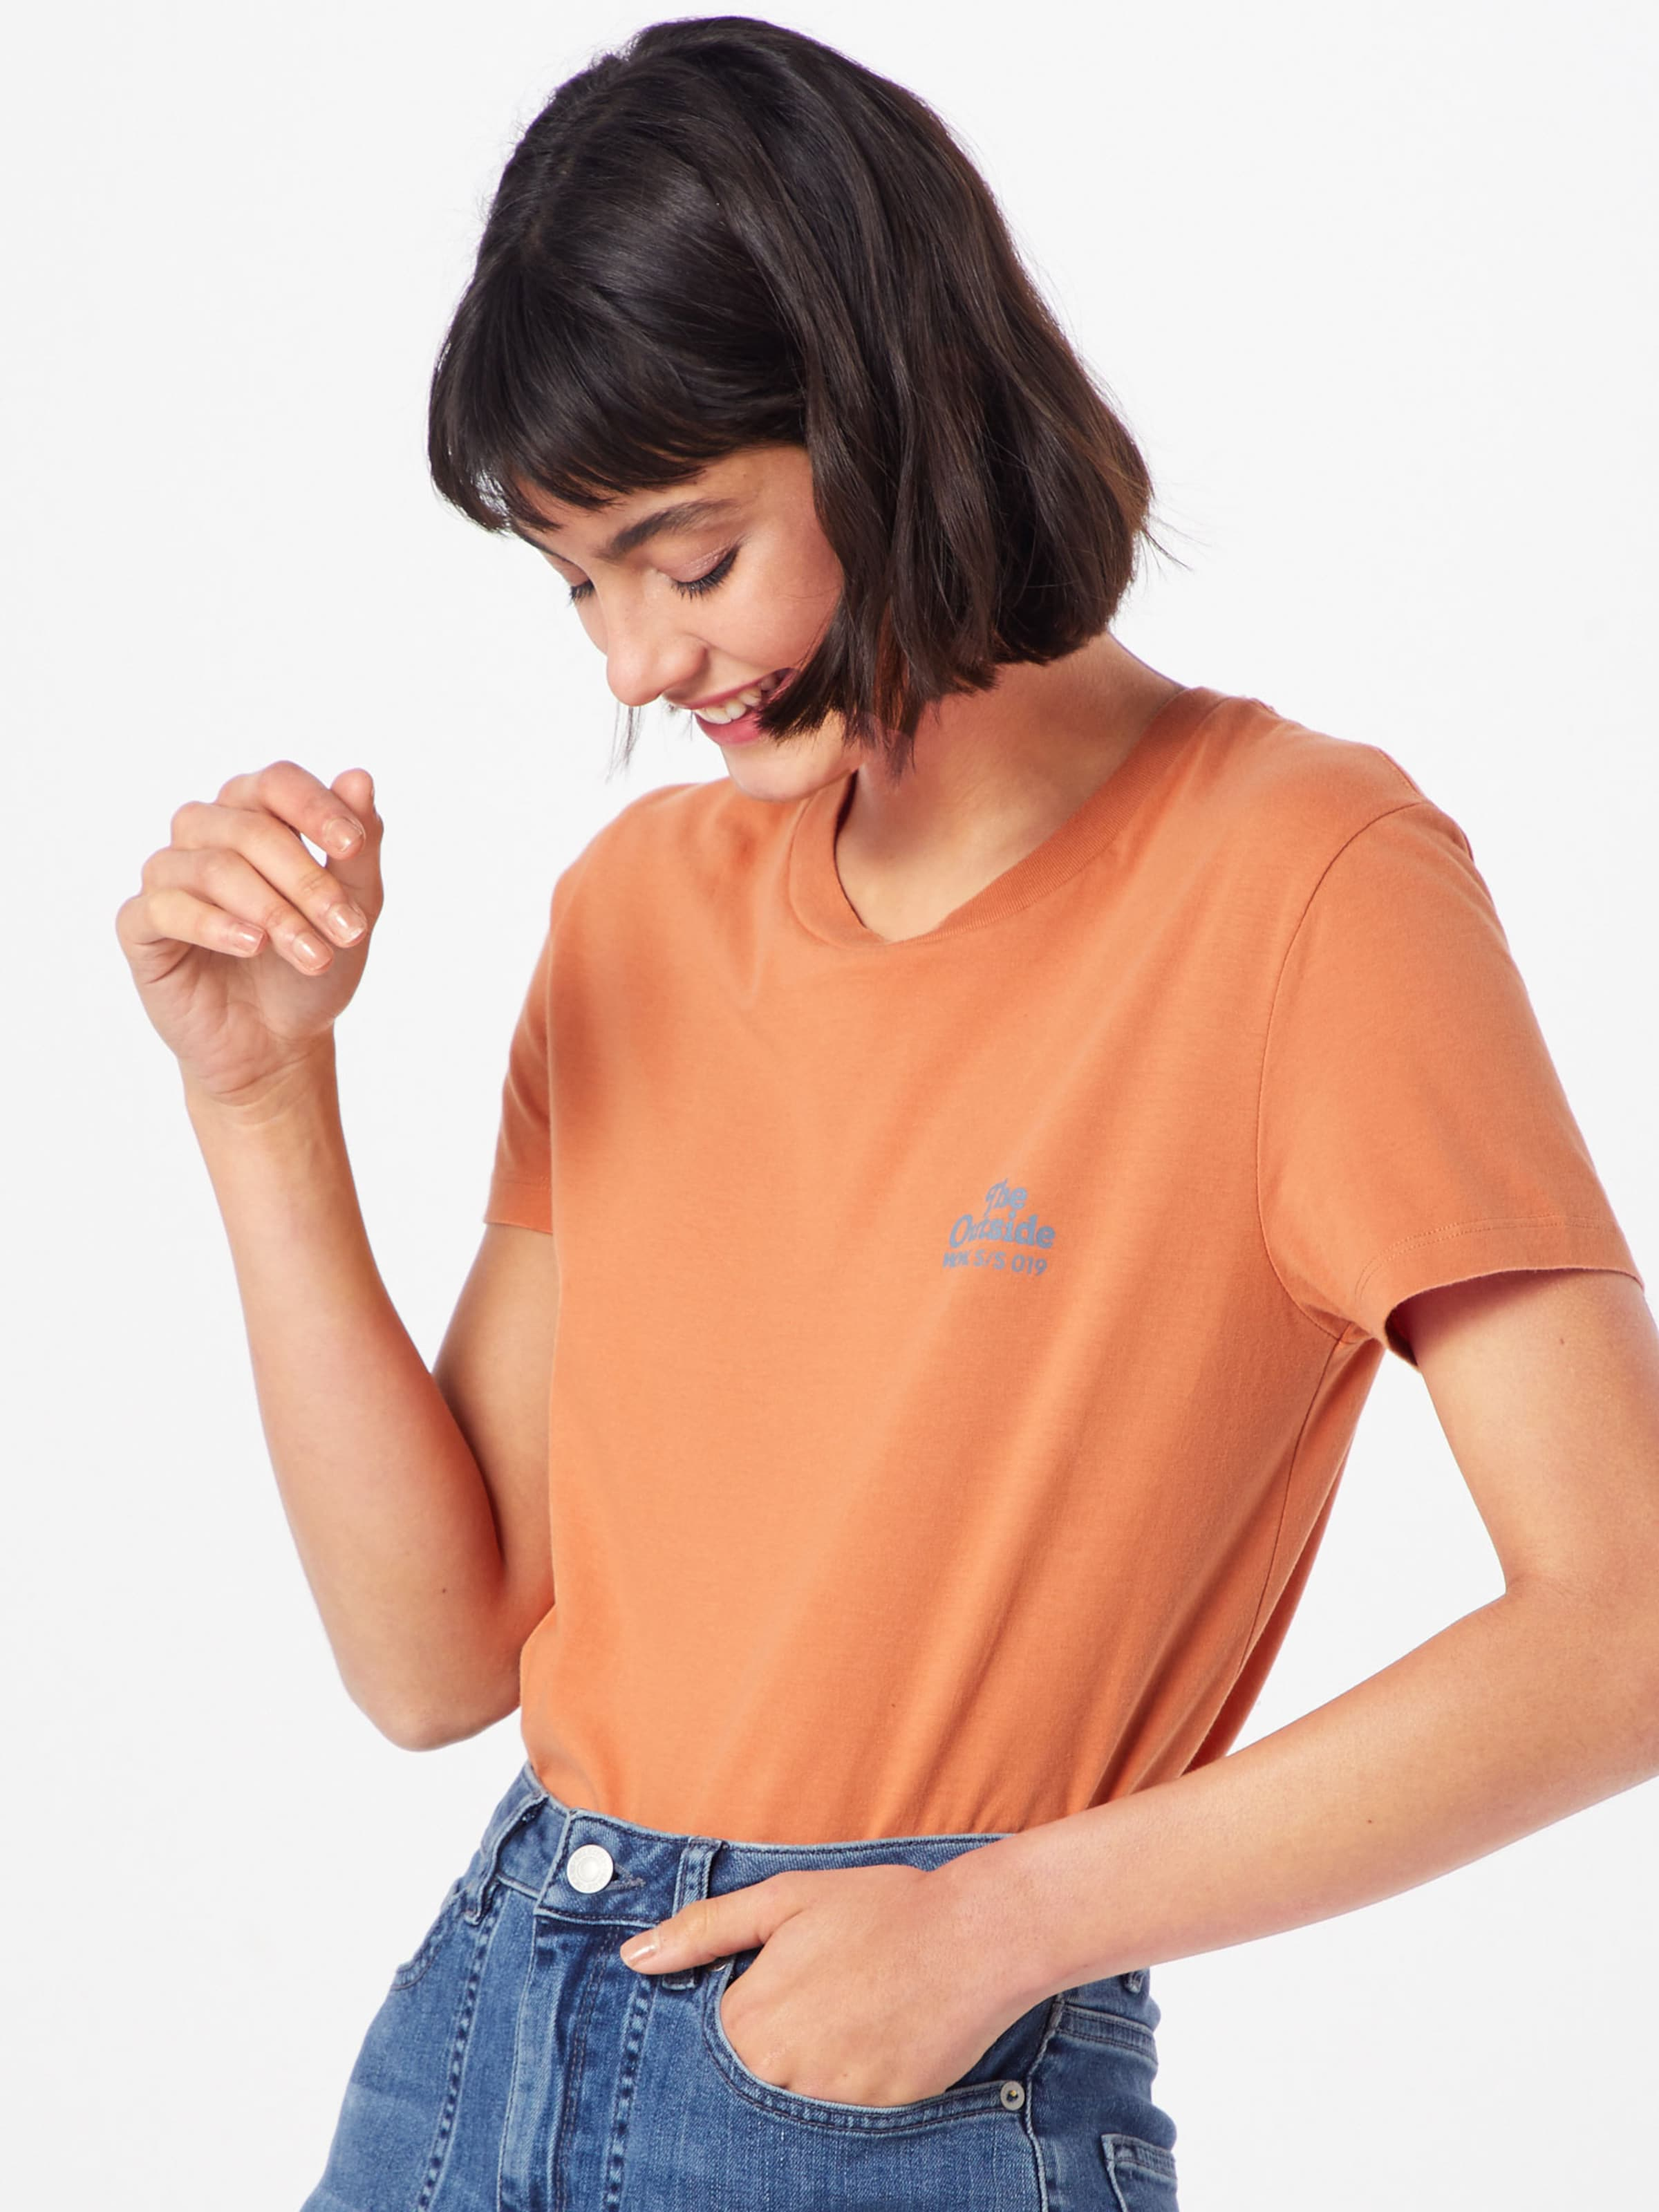 Orange In 'eden' 'eden' Wood Shirt Shirt 'eden' Wood Shirt Orange In Wood In wOmN0v8Pyn